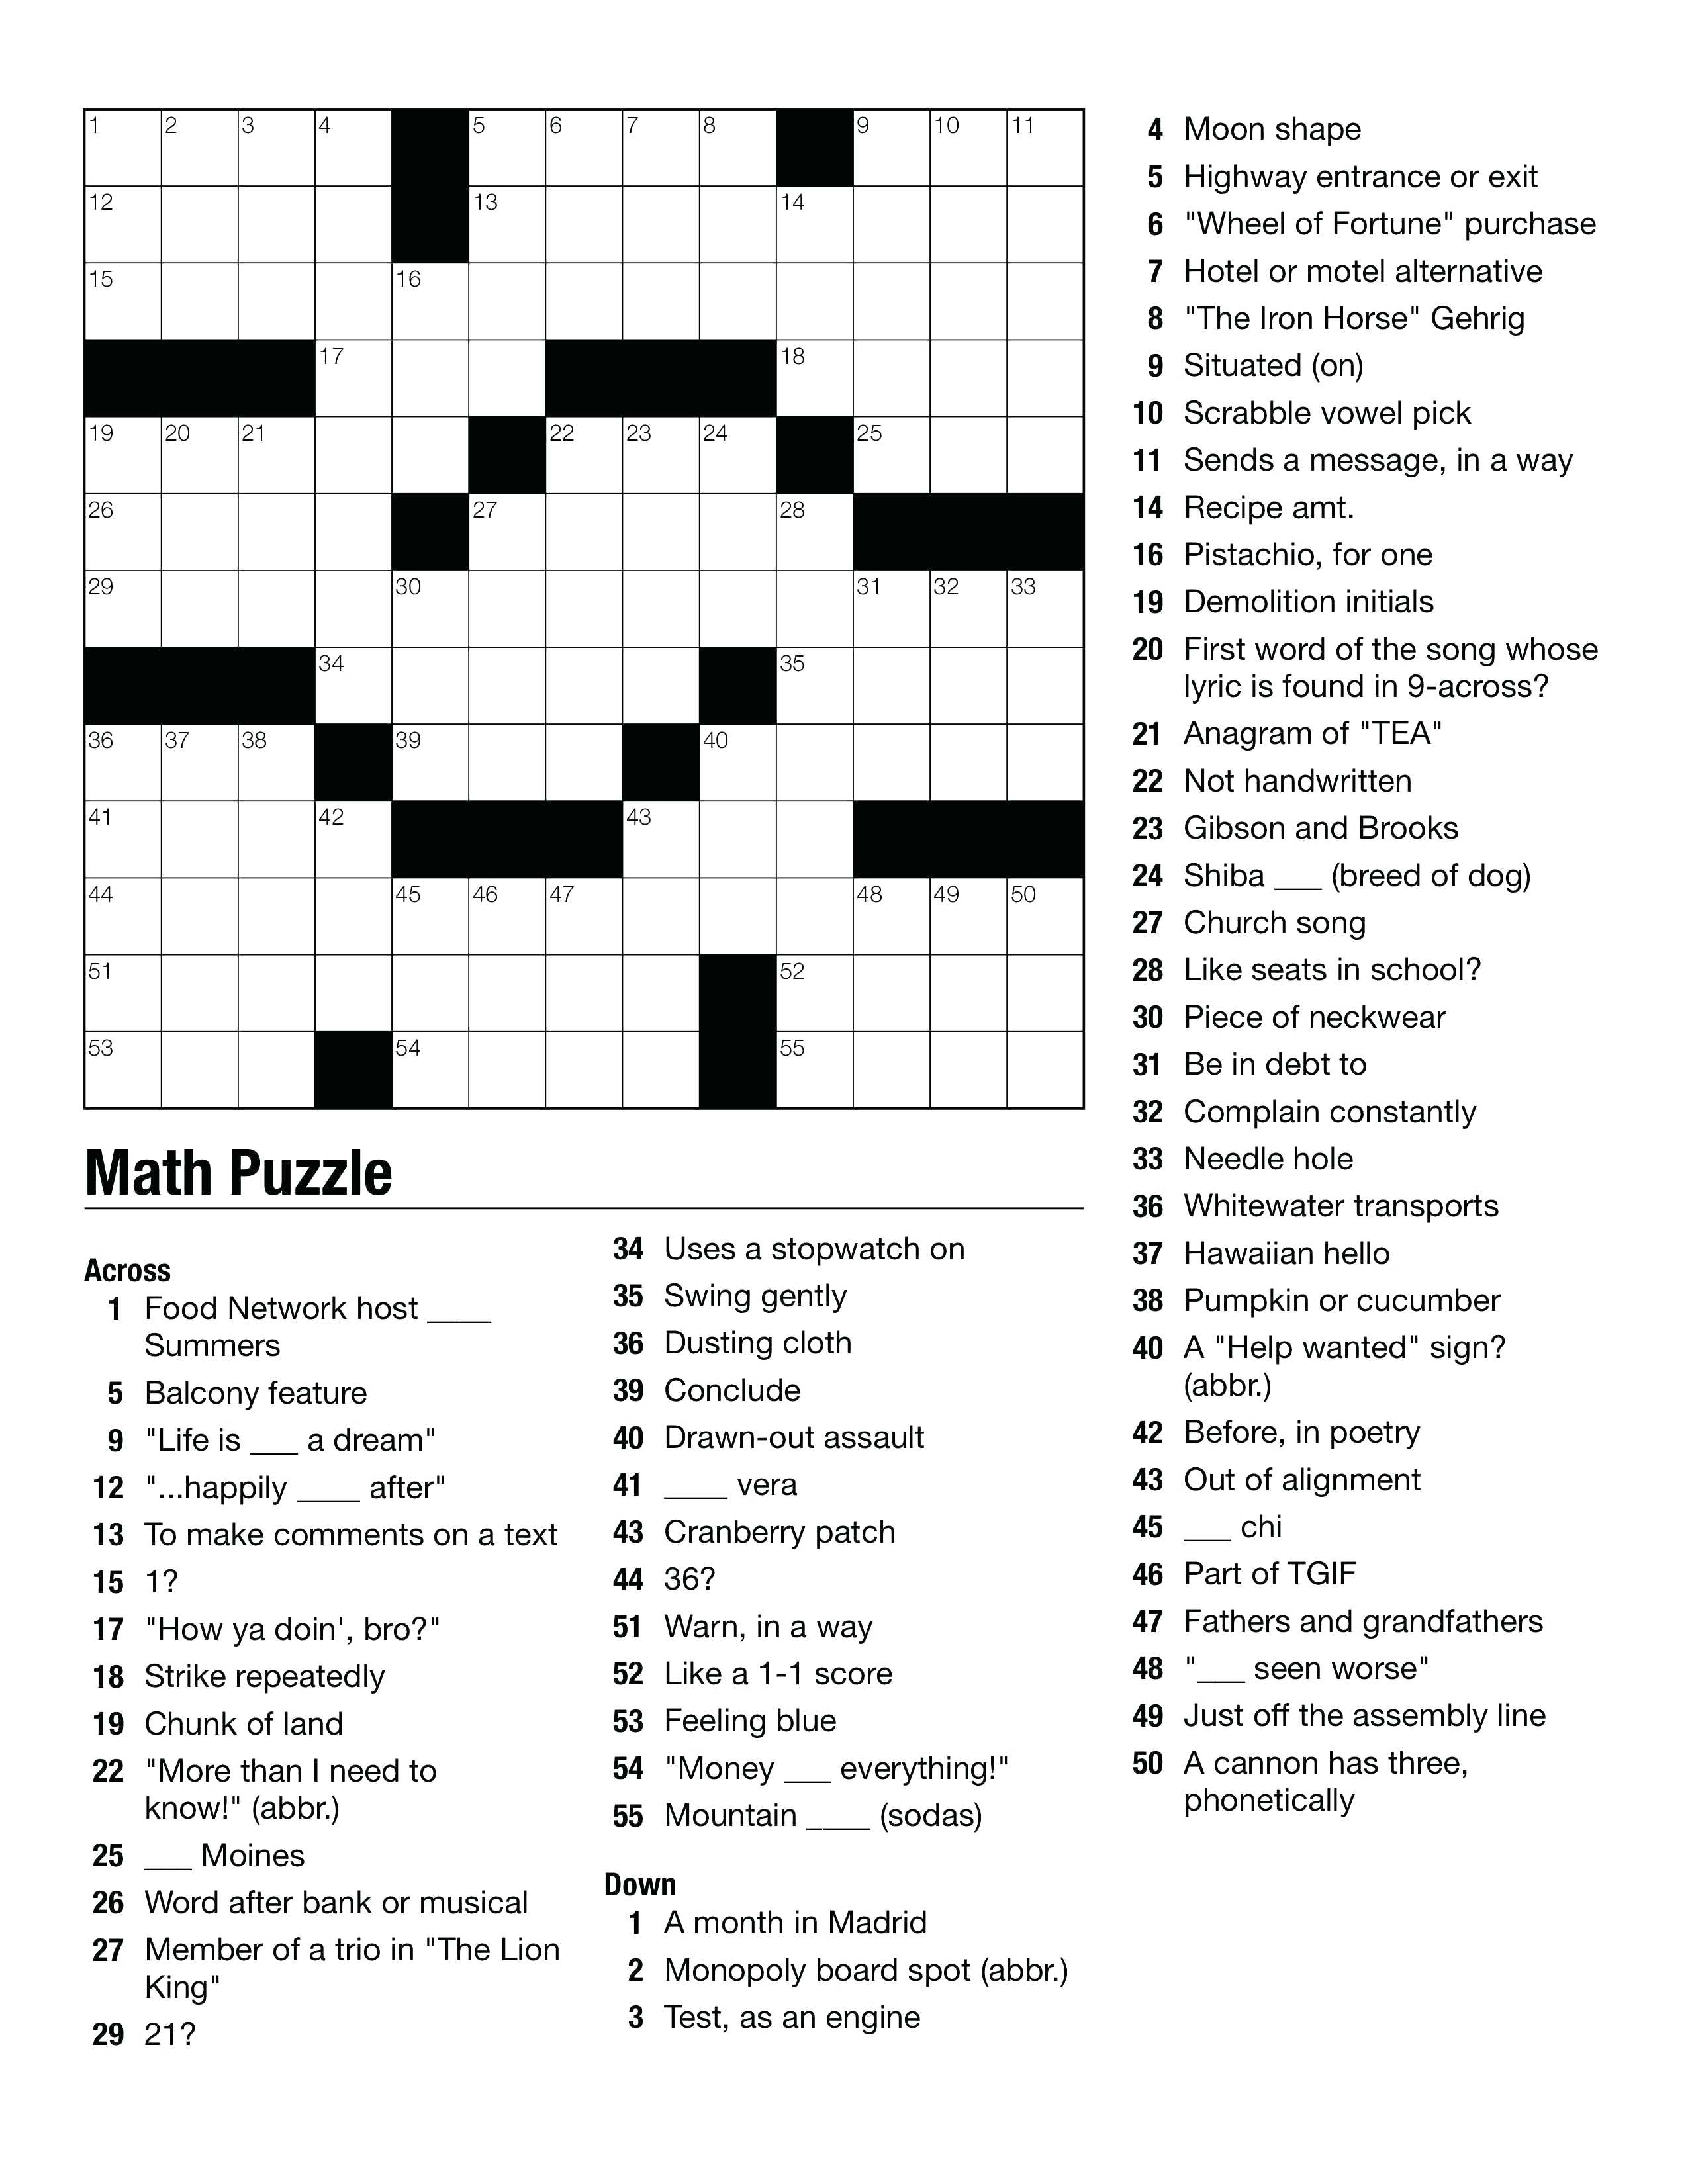 Geometry Puzzles Math Geometry Images Teaching Ideas On Crossword - Printable Puzzles For Middle School